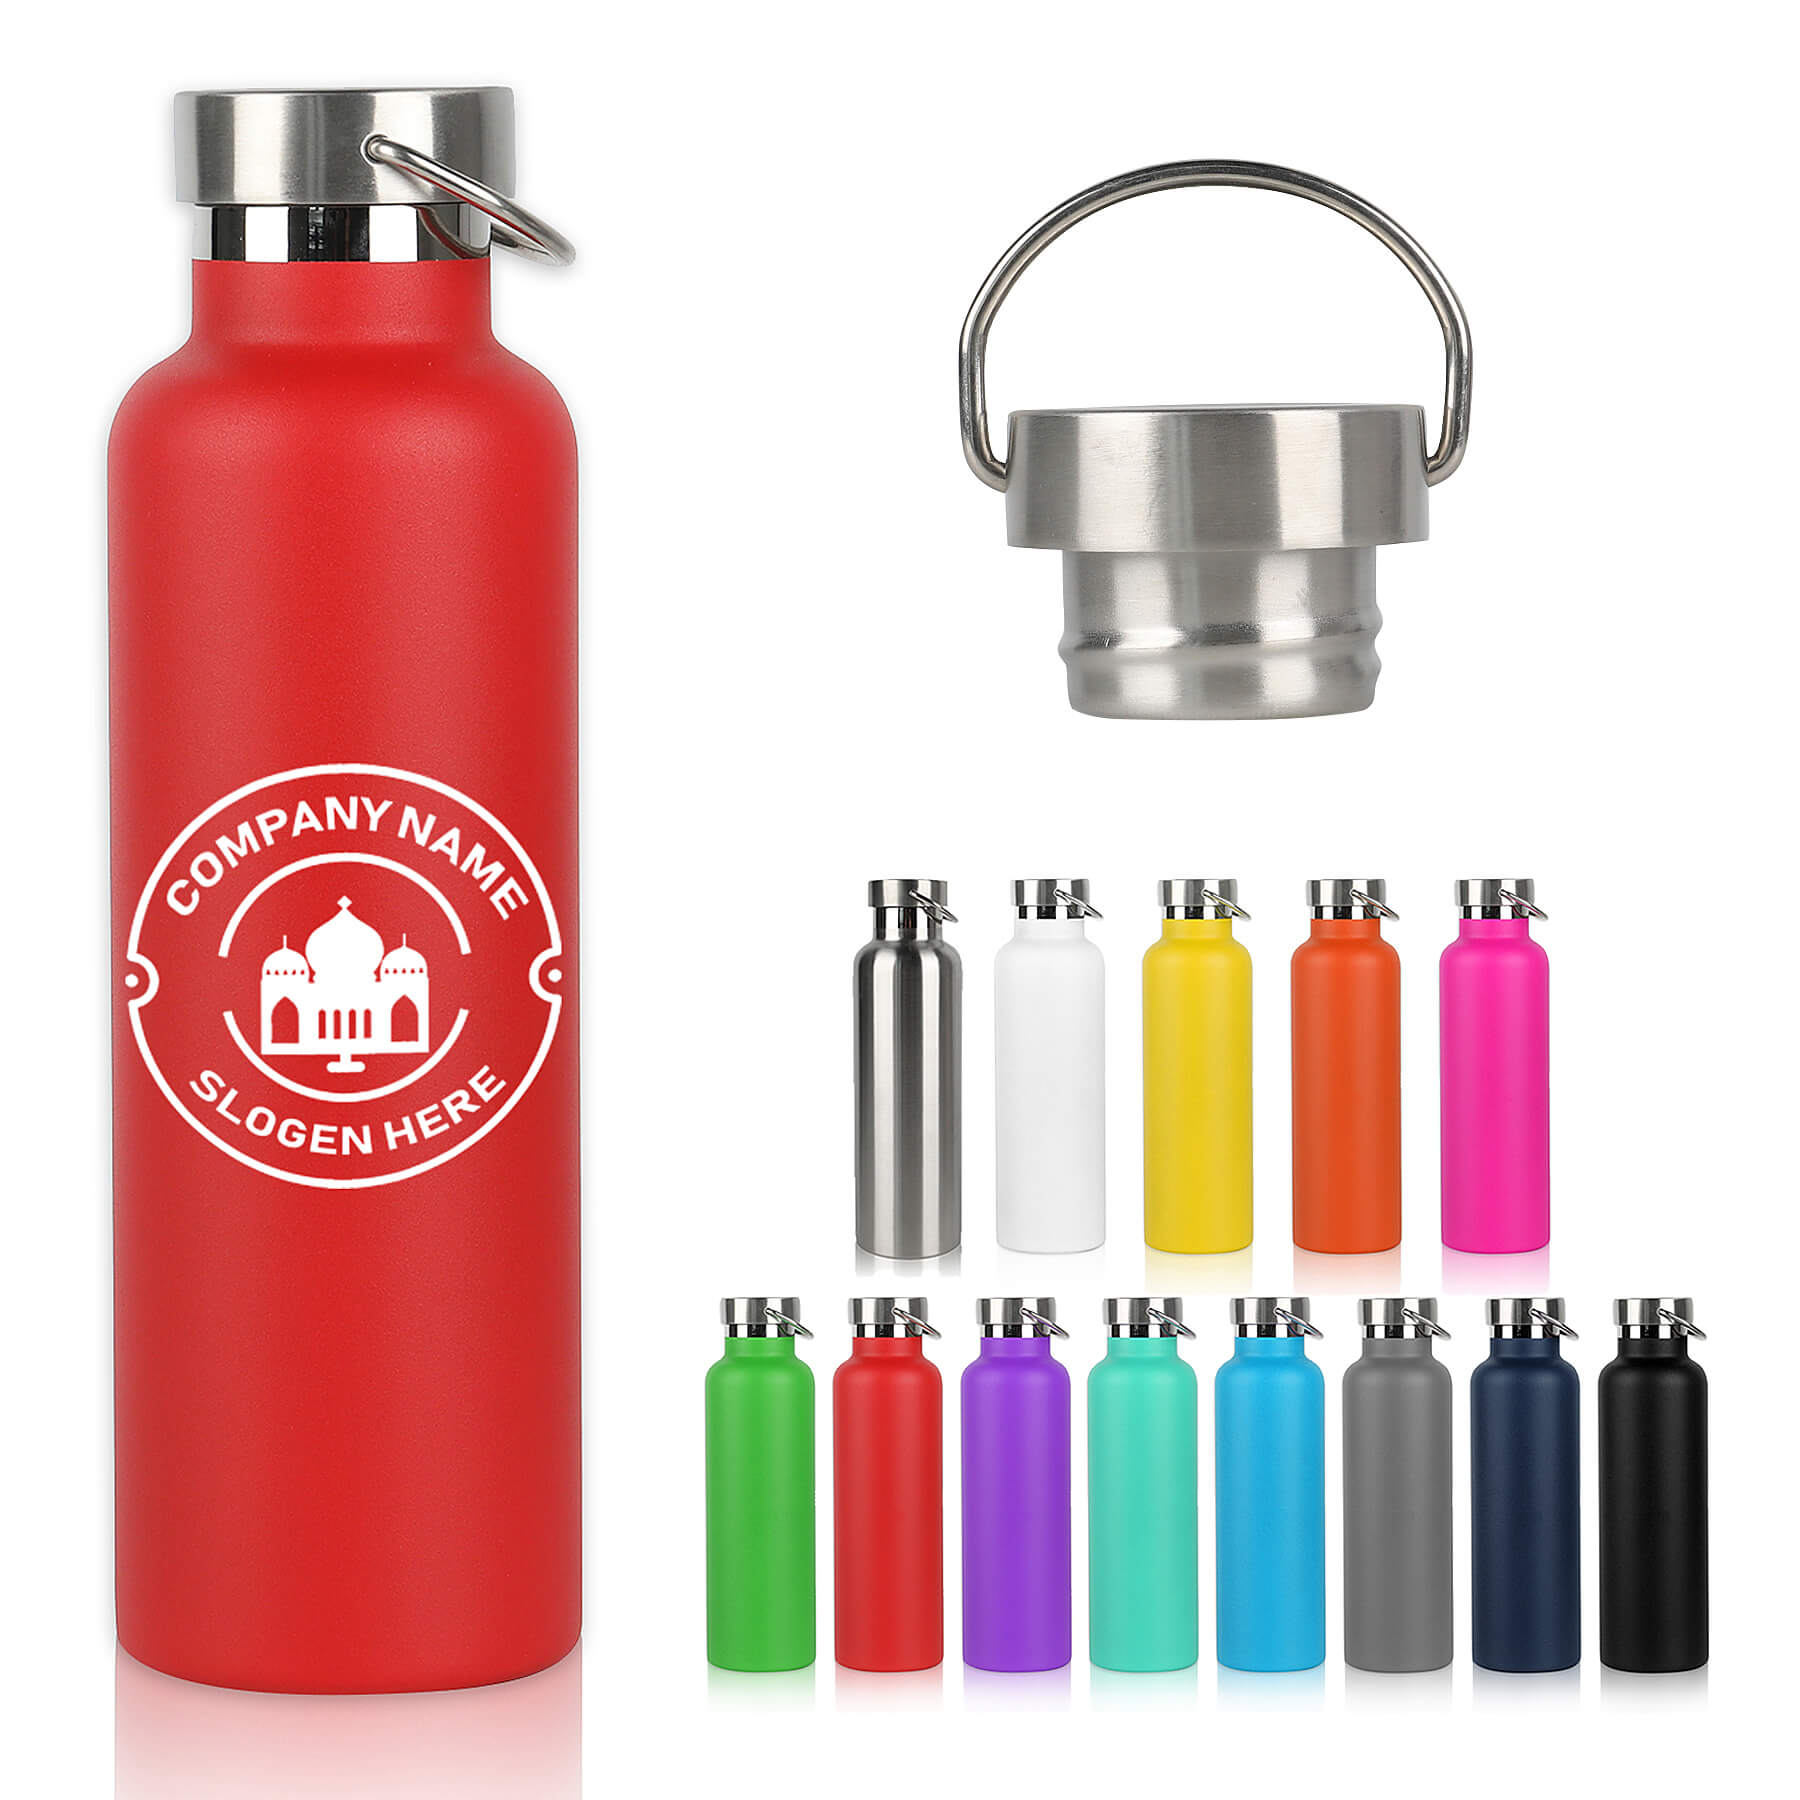 25 Oz Vacuum Sealed Double Wall Insulated Stainless Steel Water Bottle - 25 Oz Vacuum Sealed Double Wall Insulated Stainless Steel Water Bottle